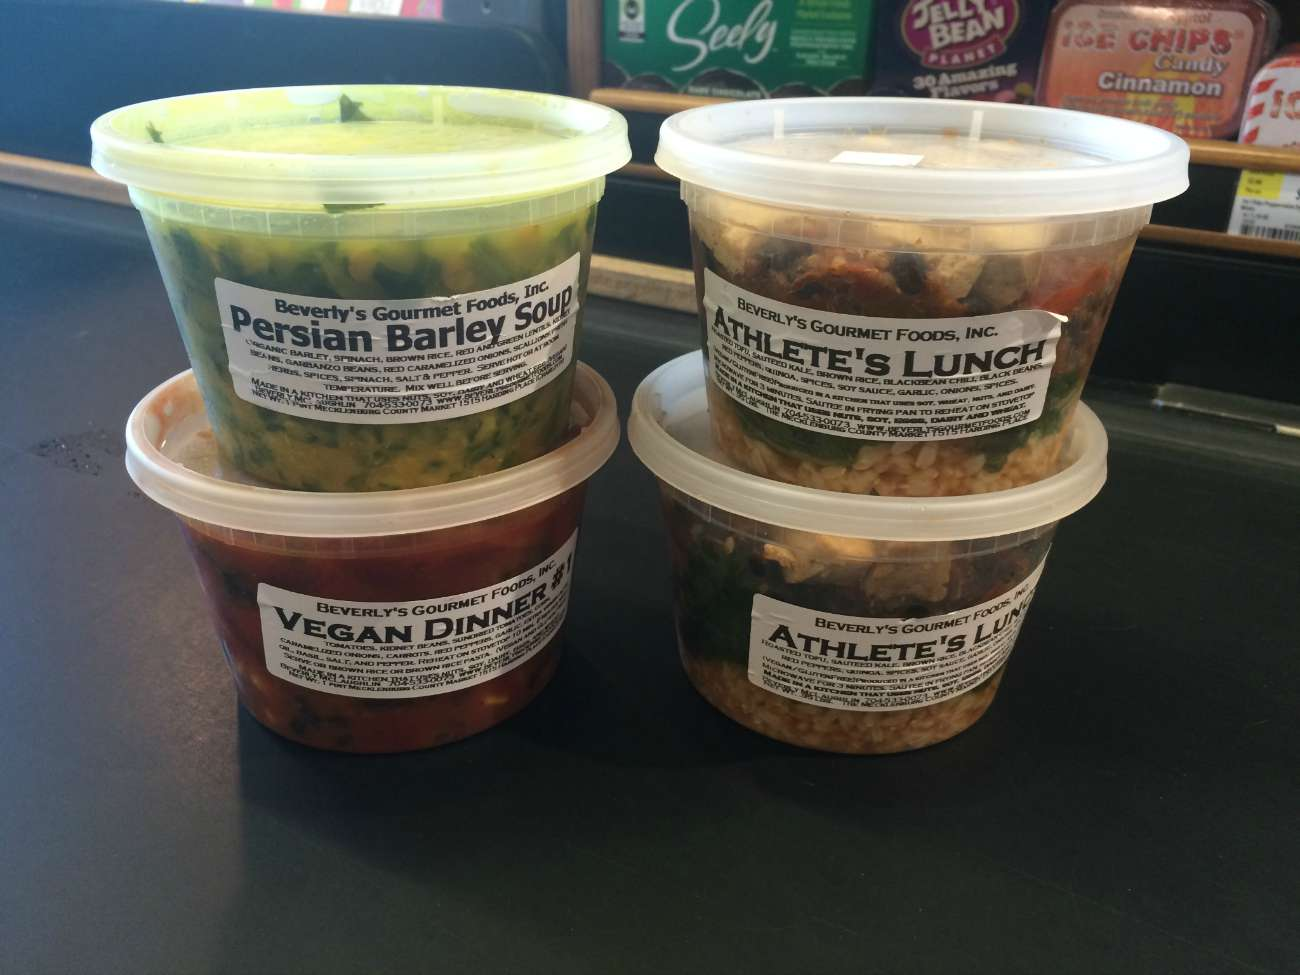 I ate Beverly's Gourmet meals for lunch and dinner every day for a week. Here's why